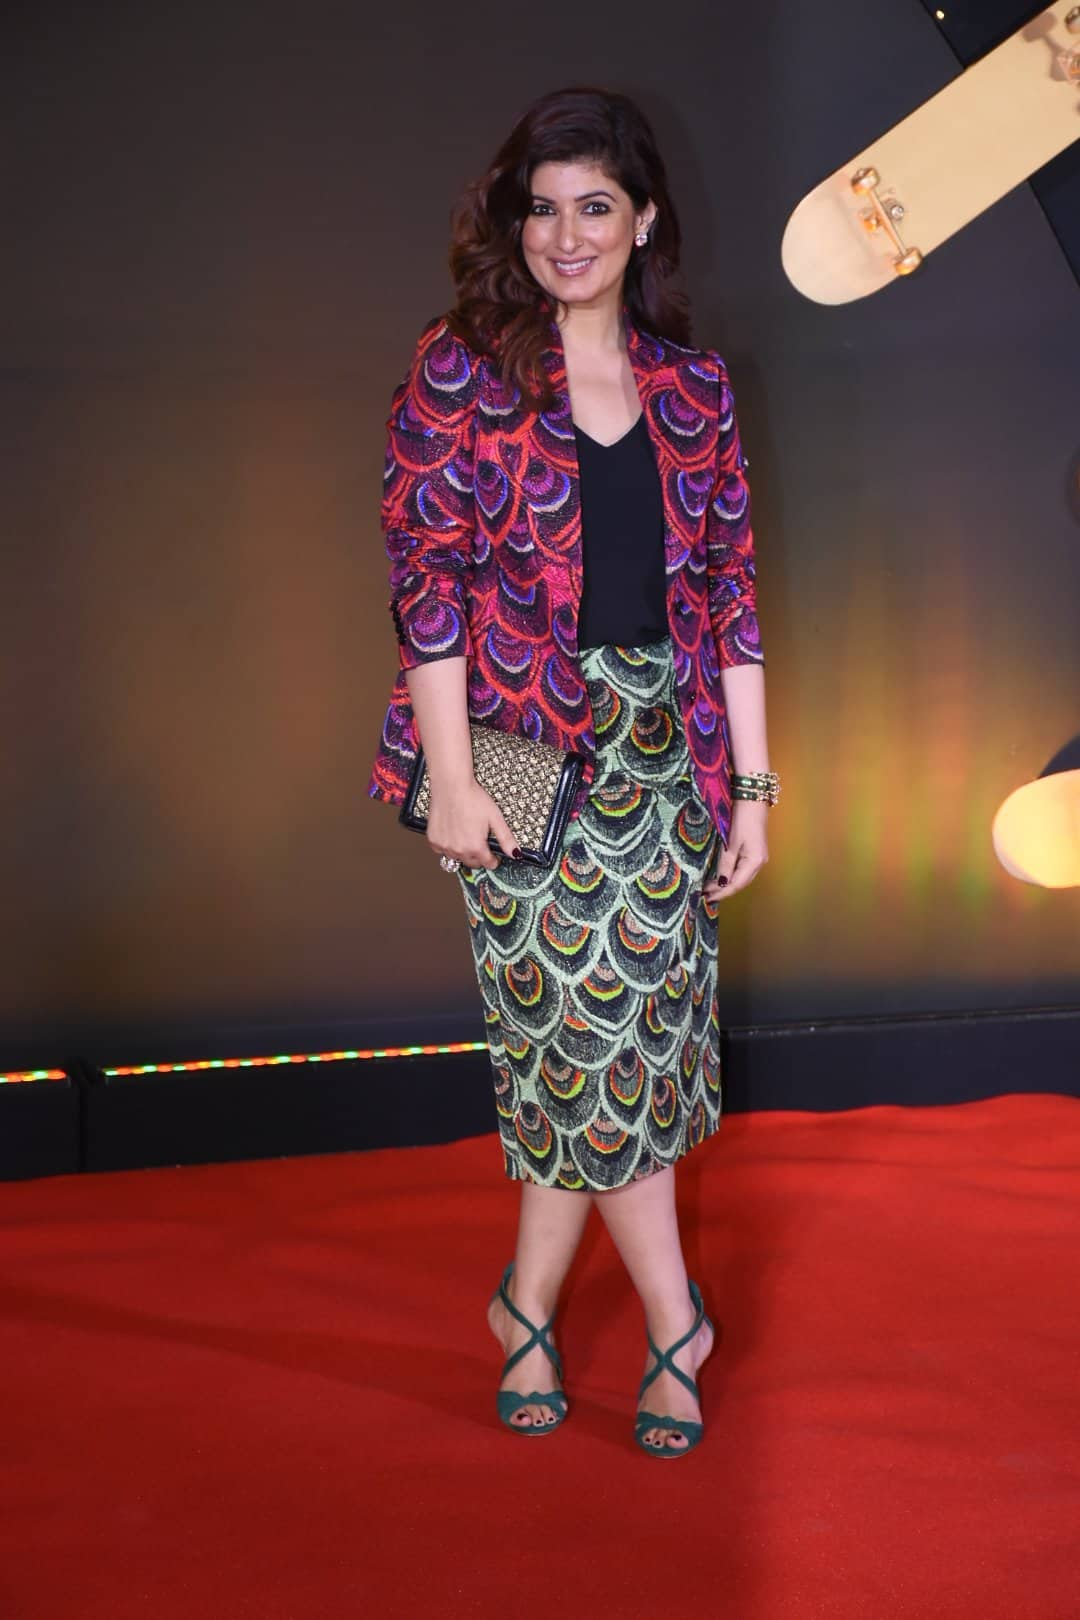 20 Years Down Twinkle Khanna Proves That Kuch Kuch Hota Hai Is A Blockbuster Because Of Her